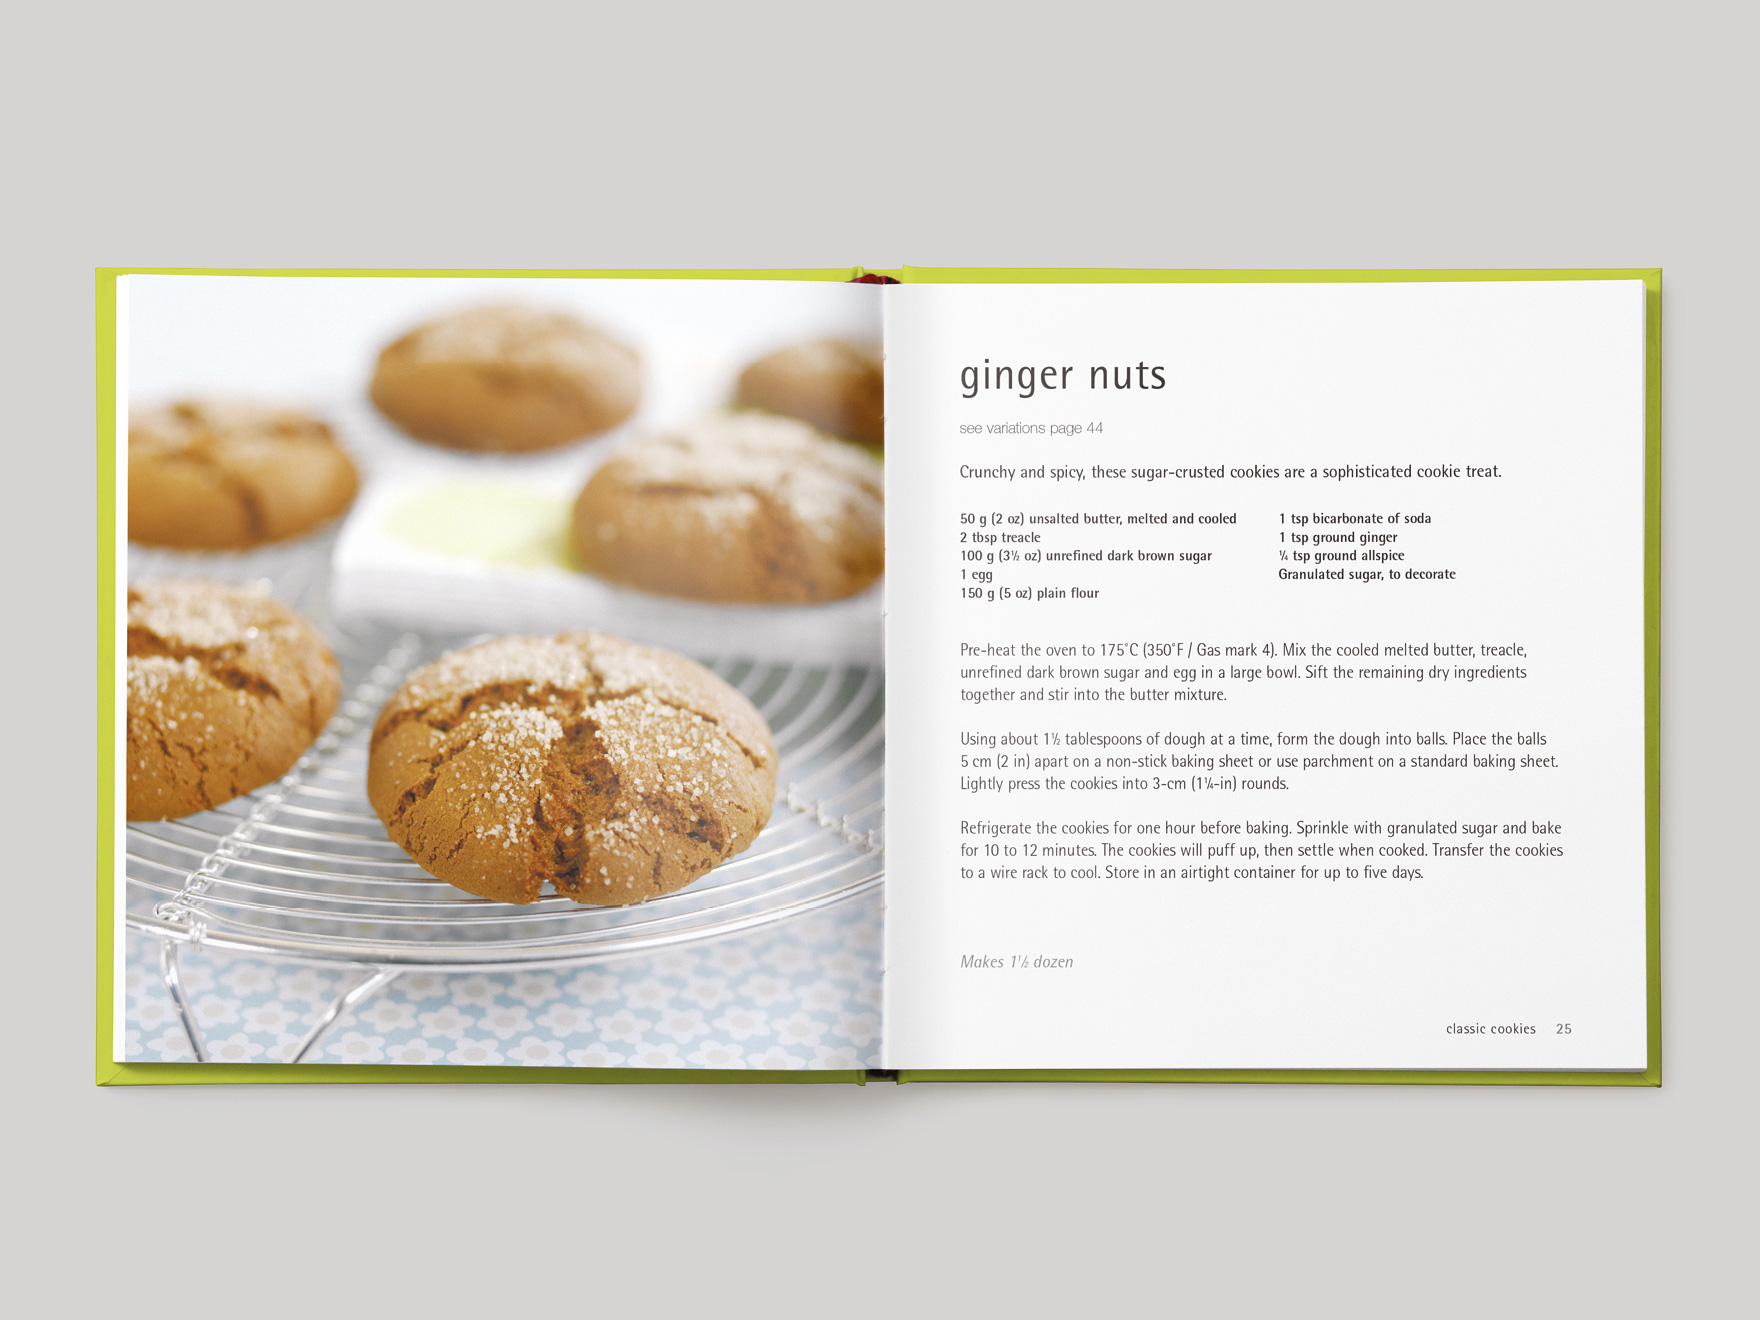 Inside pages from 500 Cookies showing a recipe for ginger nut cookies